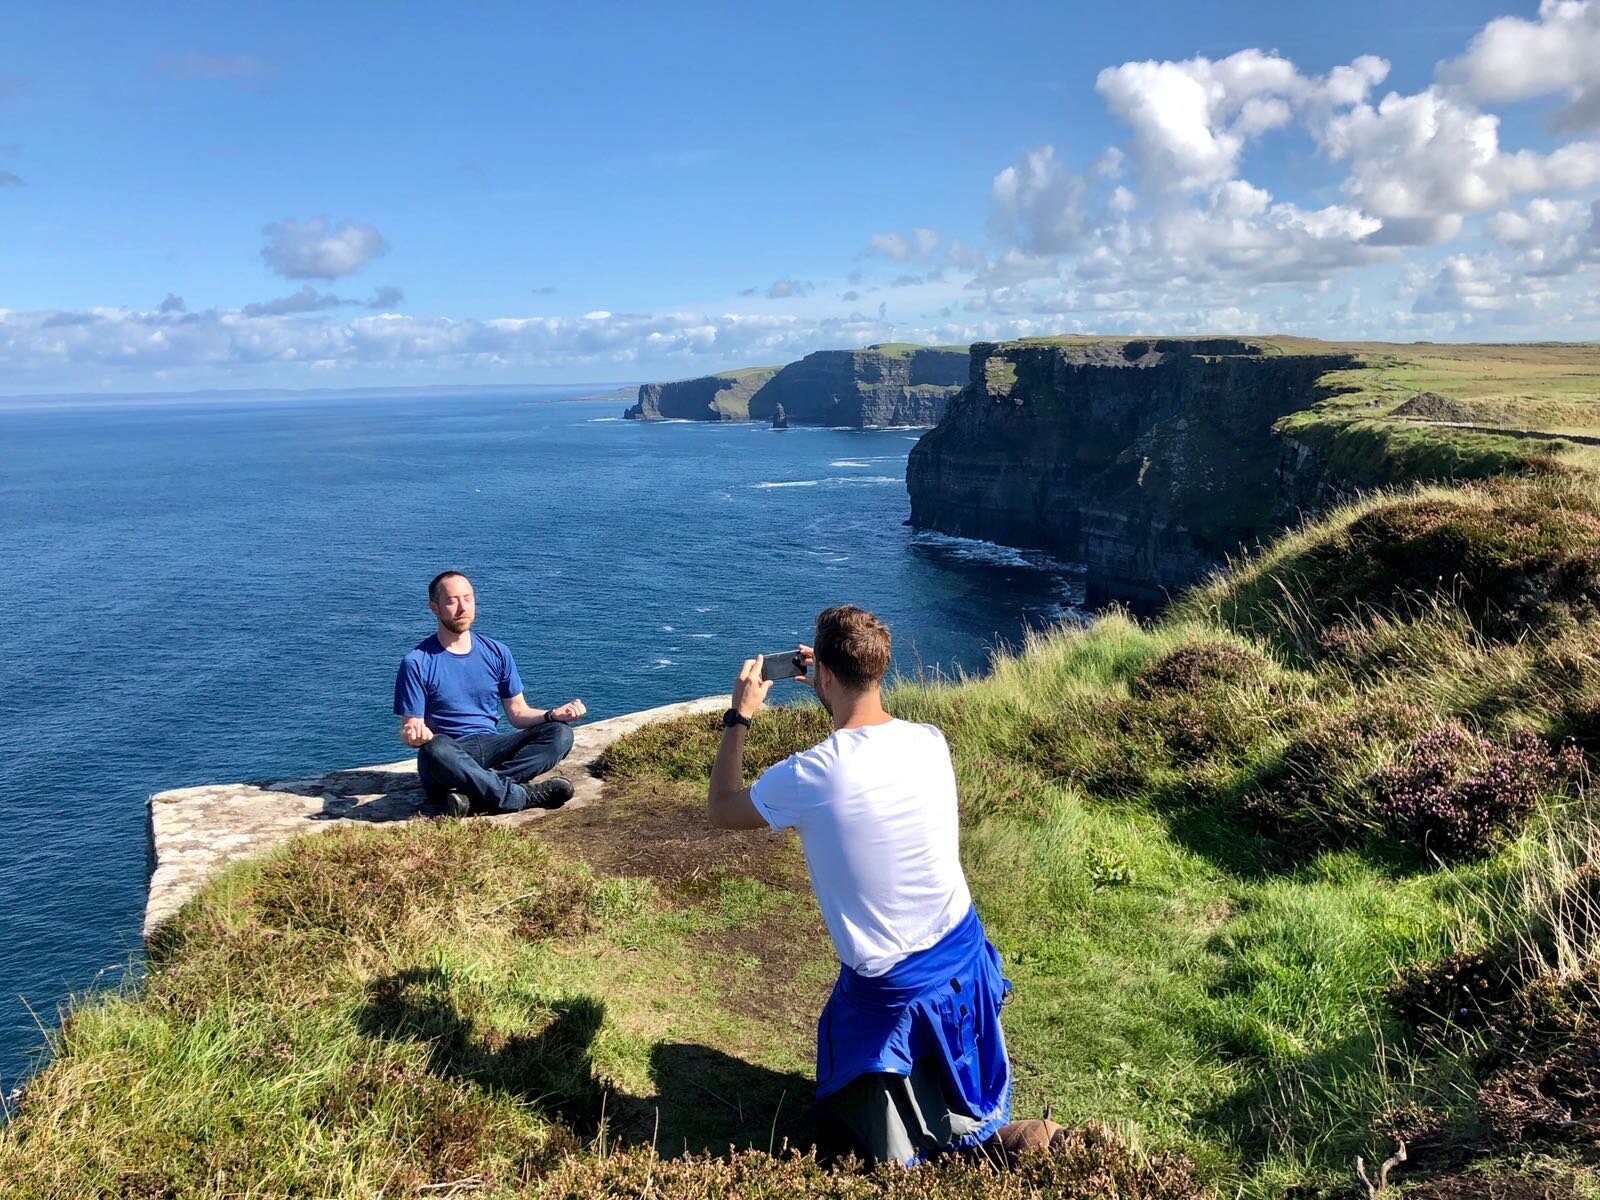 Ryan meditating on a cliff top at the famous Cliffs of Moher in Ireland. No big deal 😉